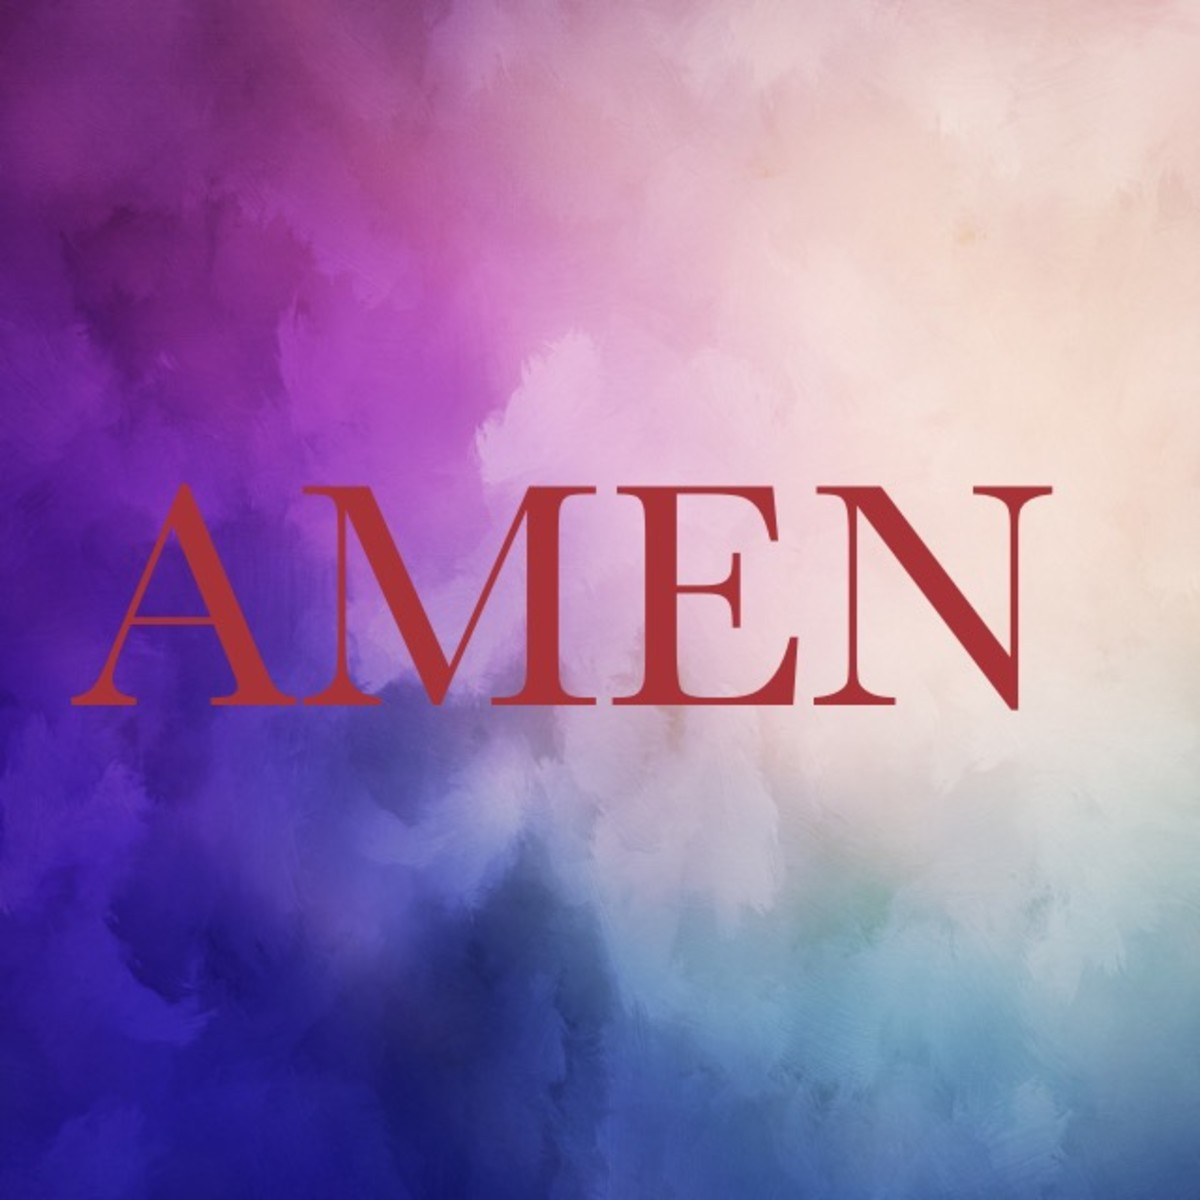 The Case Against Saying 'Amen' To Everything